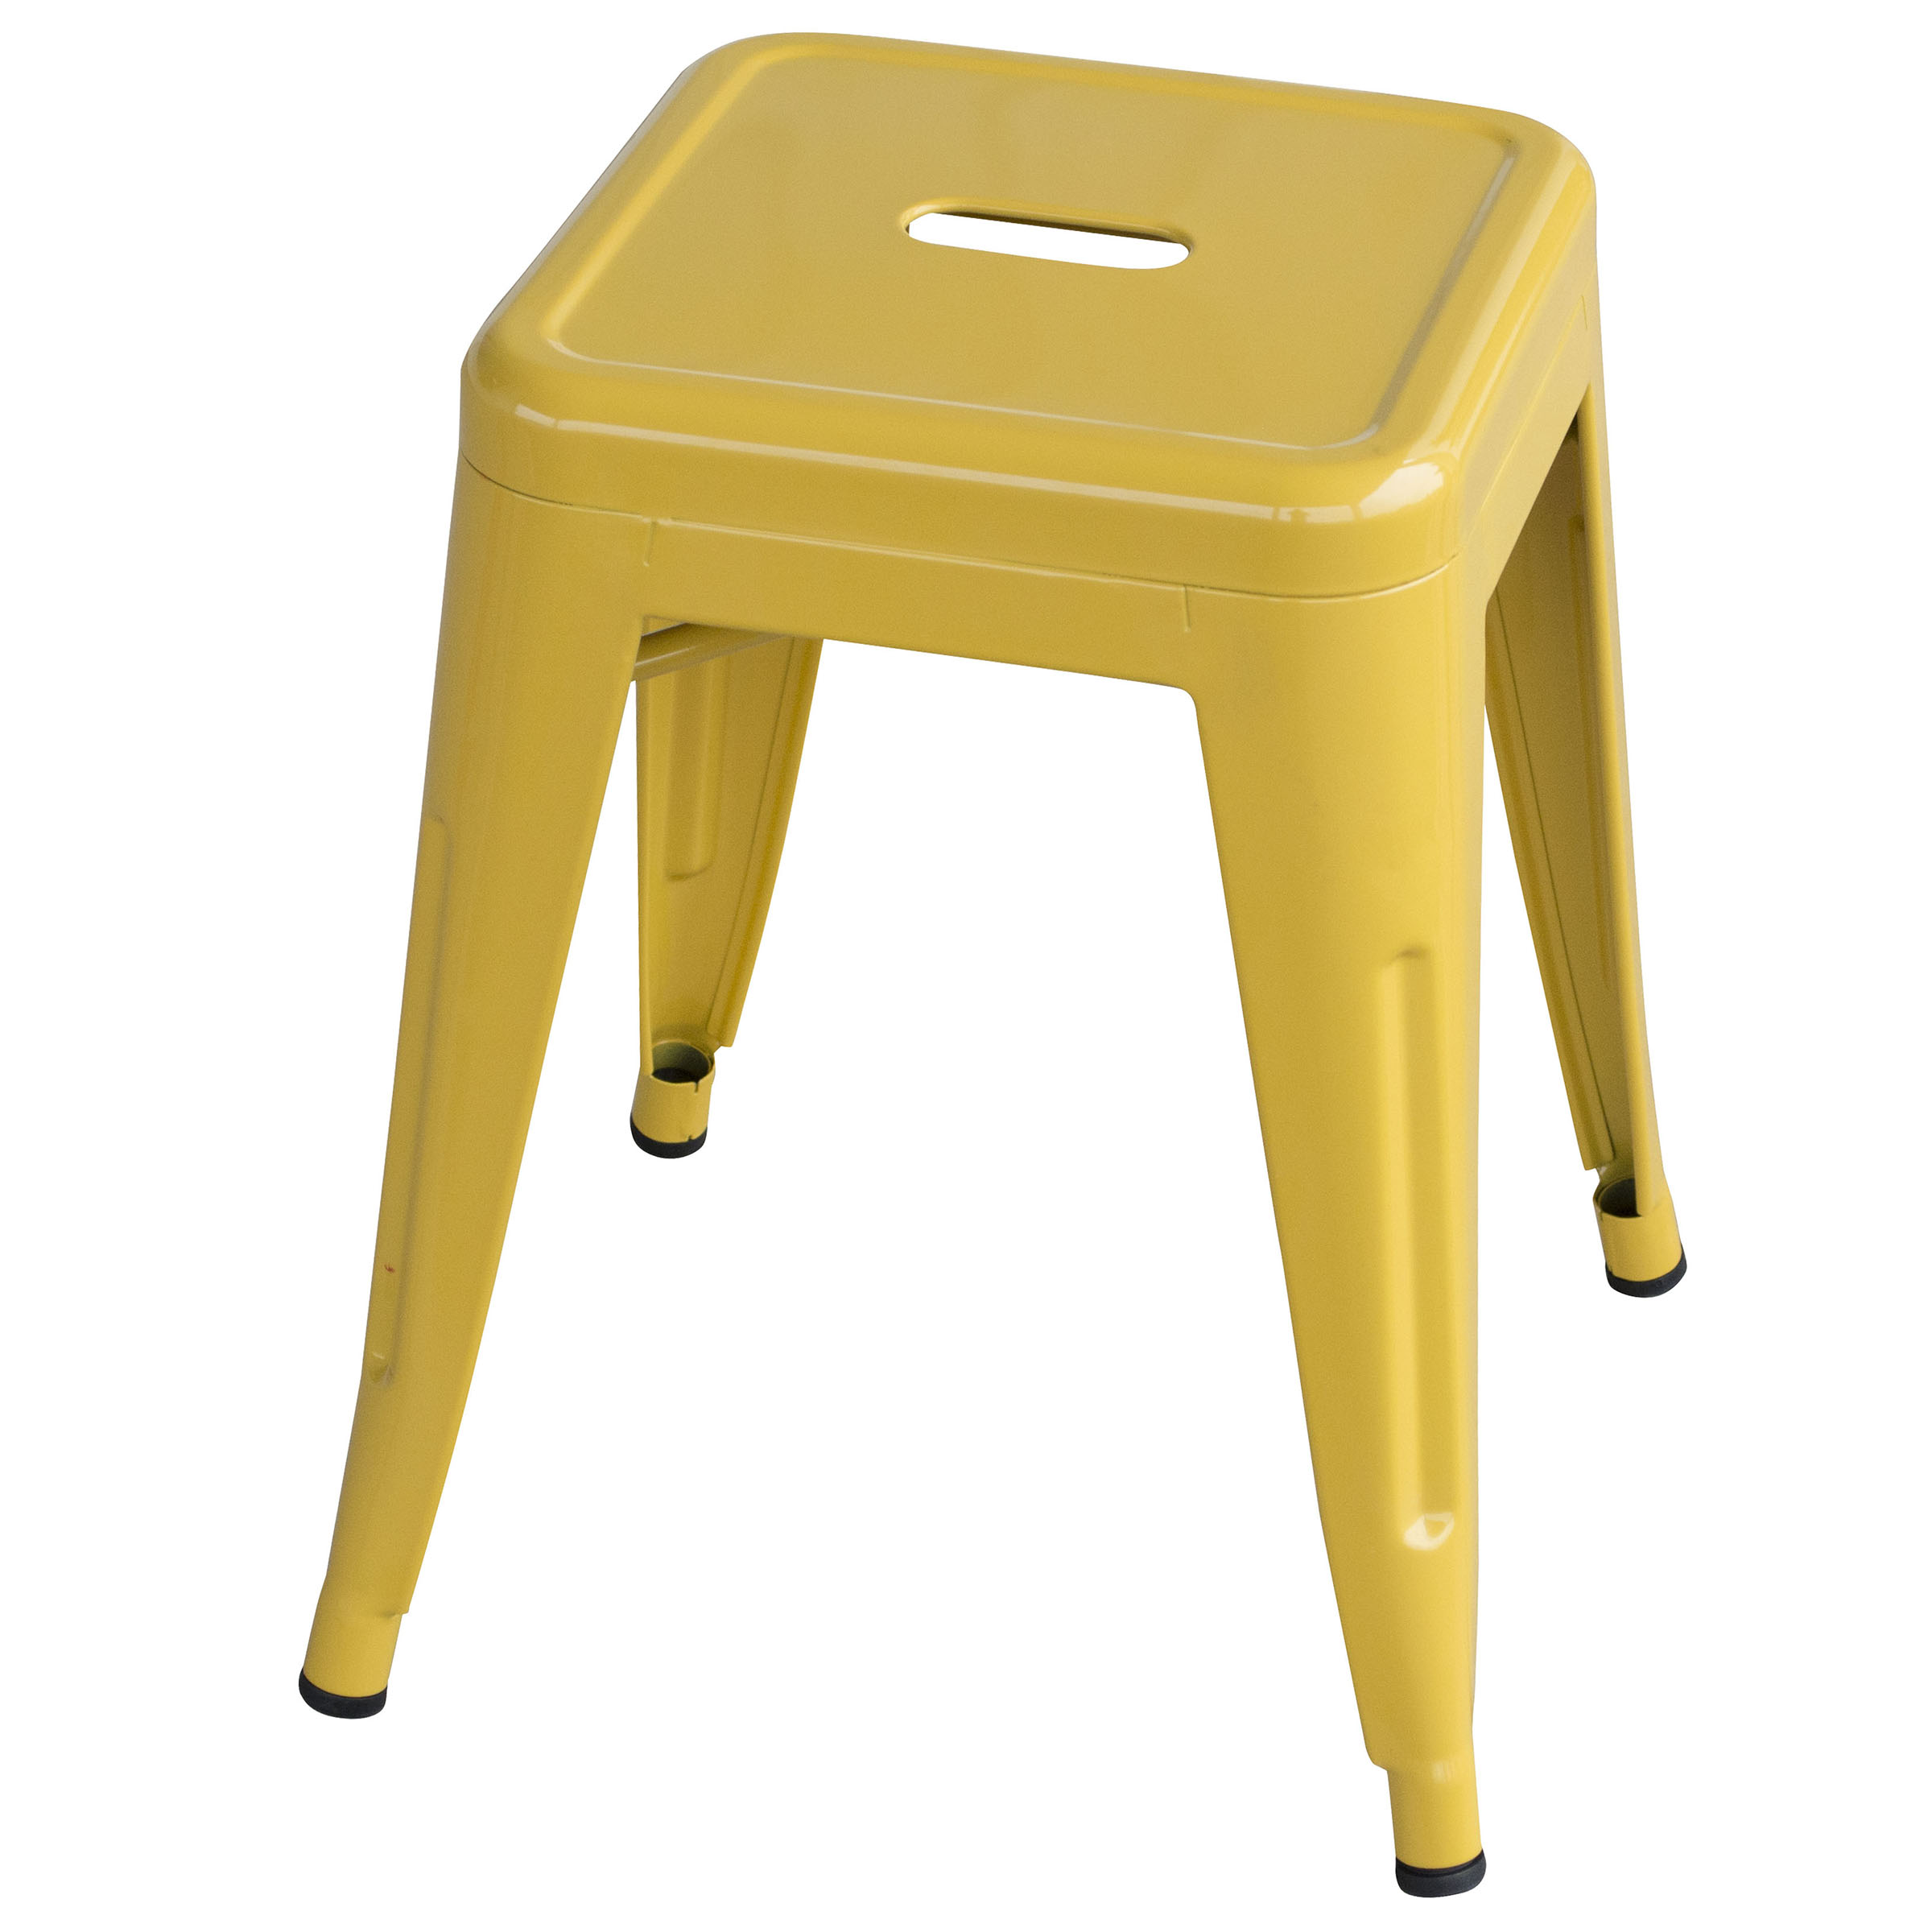 Loft Gold 18 Inch Metal Bar Stool